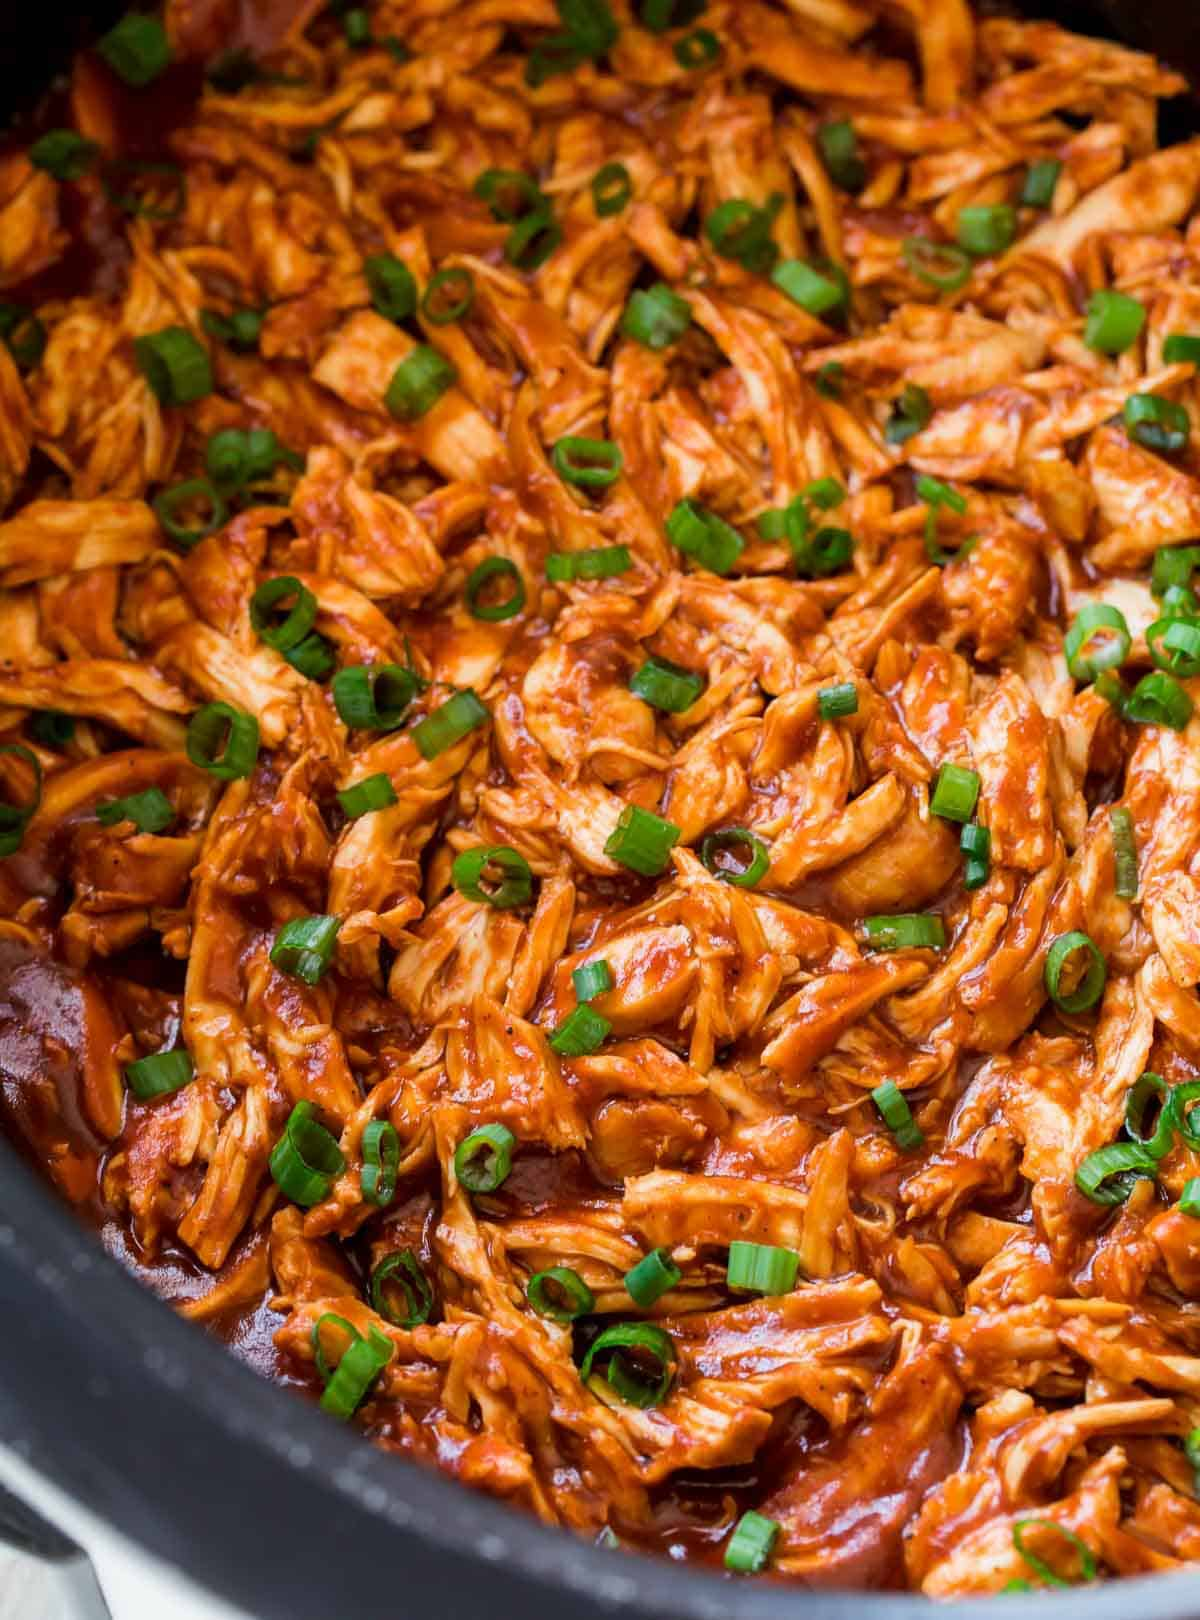 Shredded chicken in a slow cooker with sauce